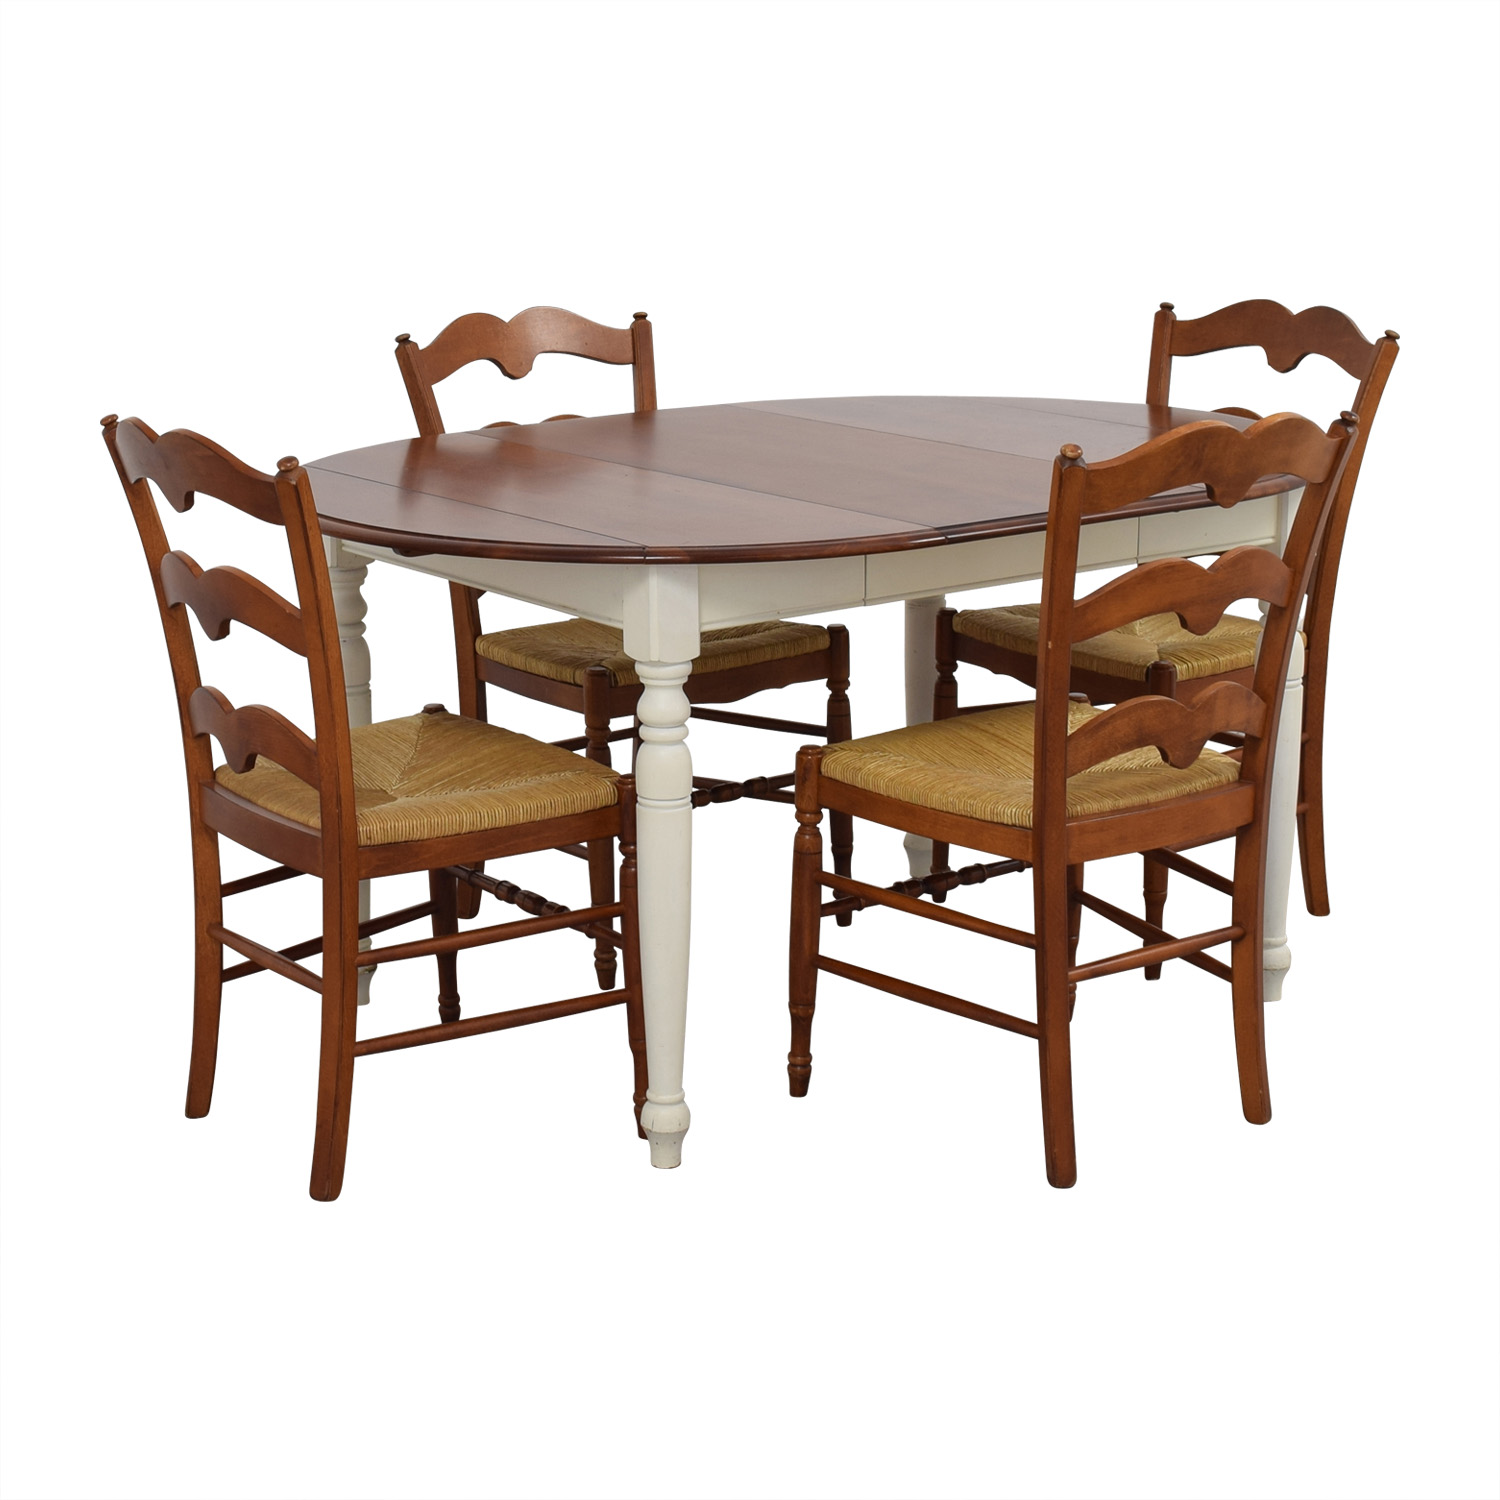 Multicolored Wooden Dining Set with Leaf Extension used